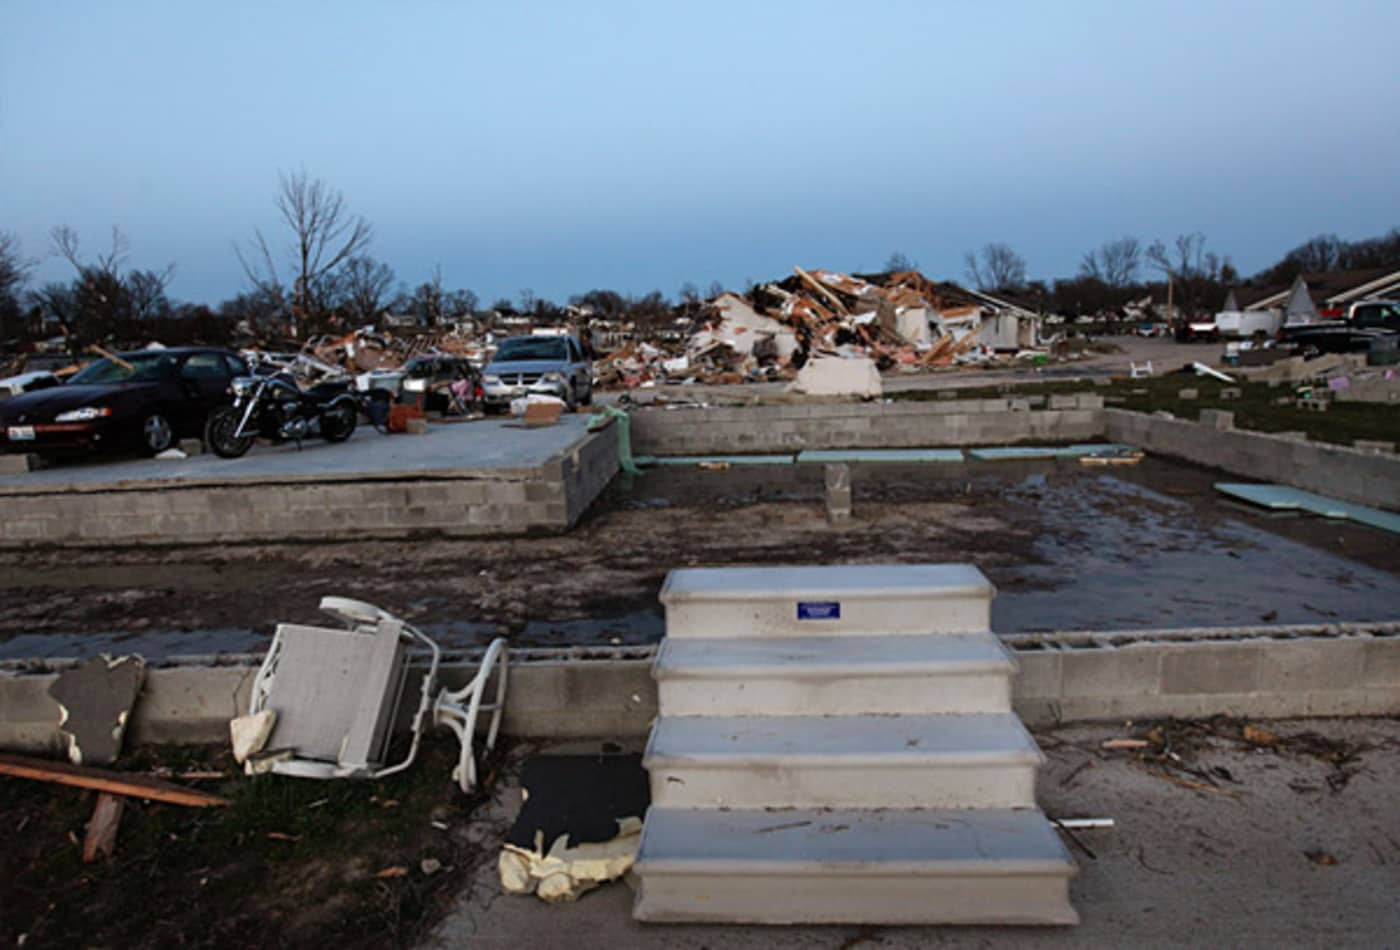 scenes-from-the-midwest-tornadoes-foundation.jpg